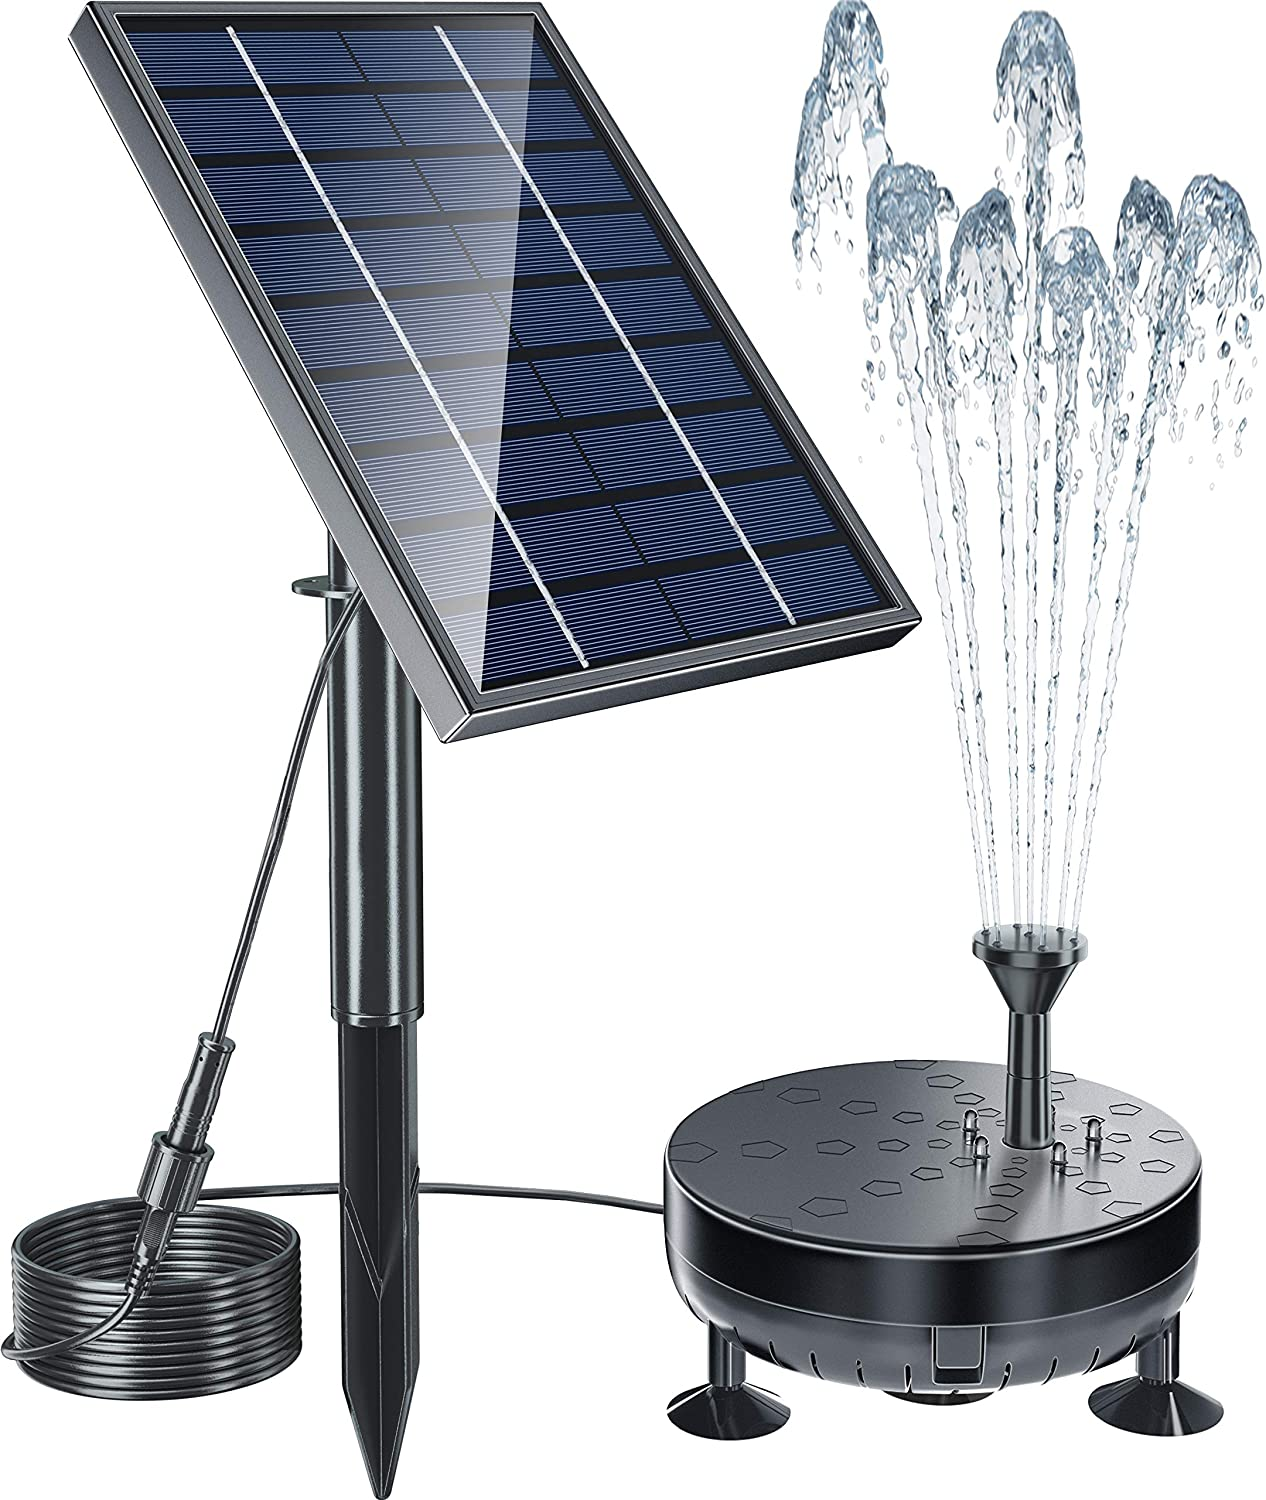 Pendoo Solar Fountain Pump, 8W Solar Powered Water Fountain Pump Built-in 2400mAh Battery with Night Work LED Lights, 6 Water Styles for Garden Pool Bird Bath Outdoors Ponds Solar Water Pump